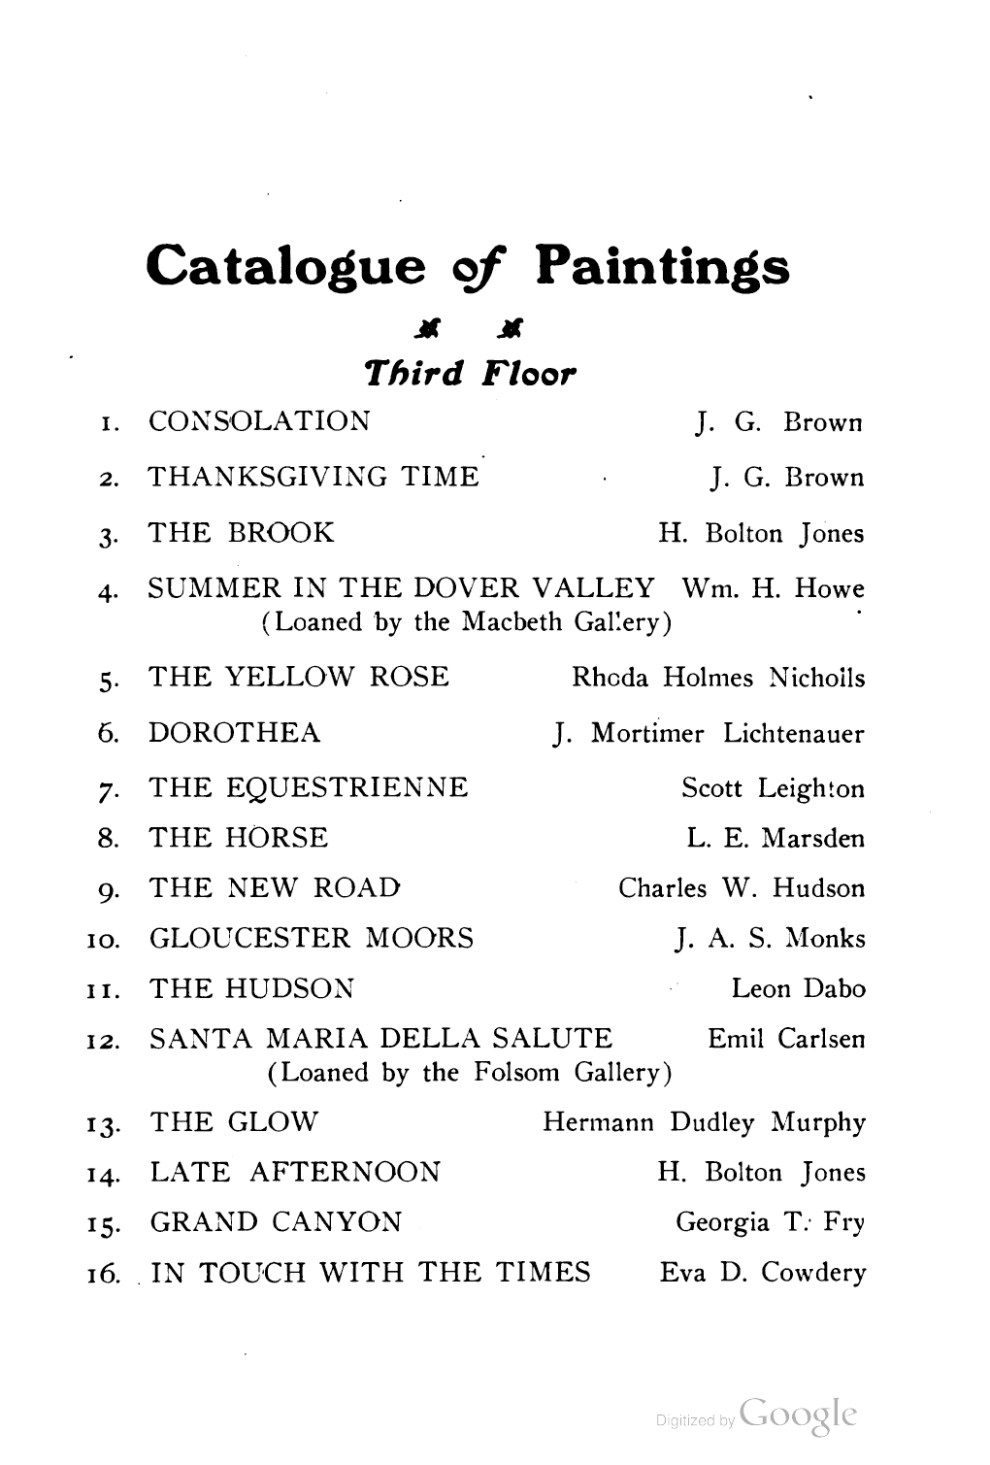 "1909 Poland Spring Art Gallery, Maine State Building, South Portland, ME, ""Fifteenth Annual Exhibition of Paintings by Prominent Artists"", 1909"